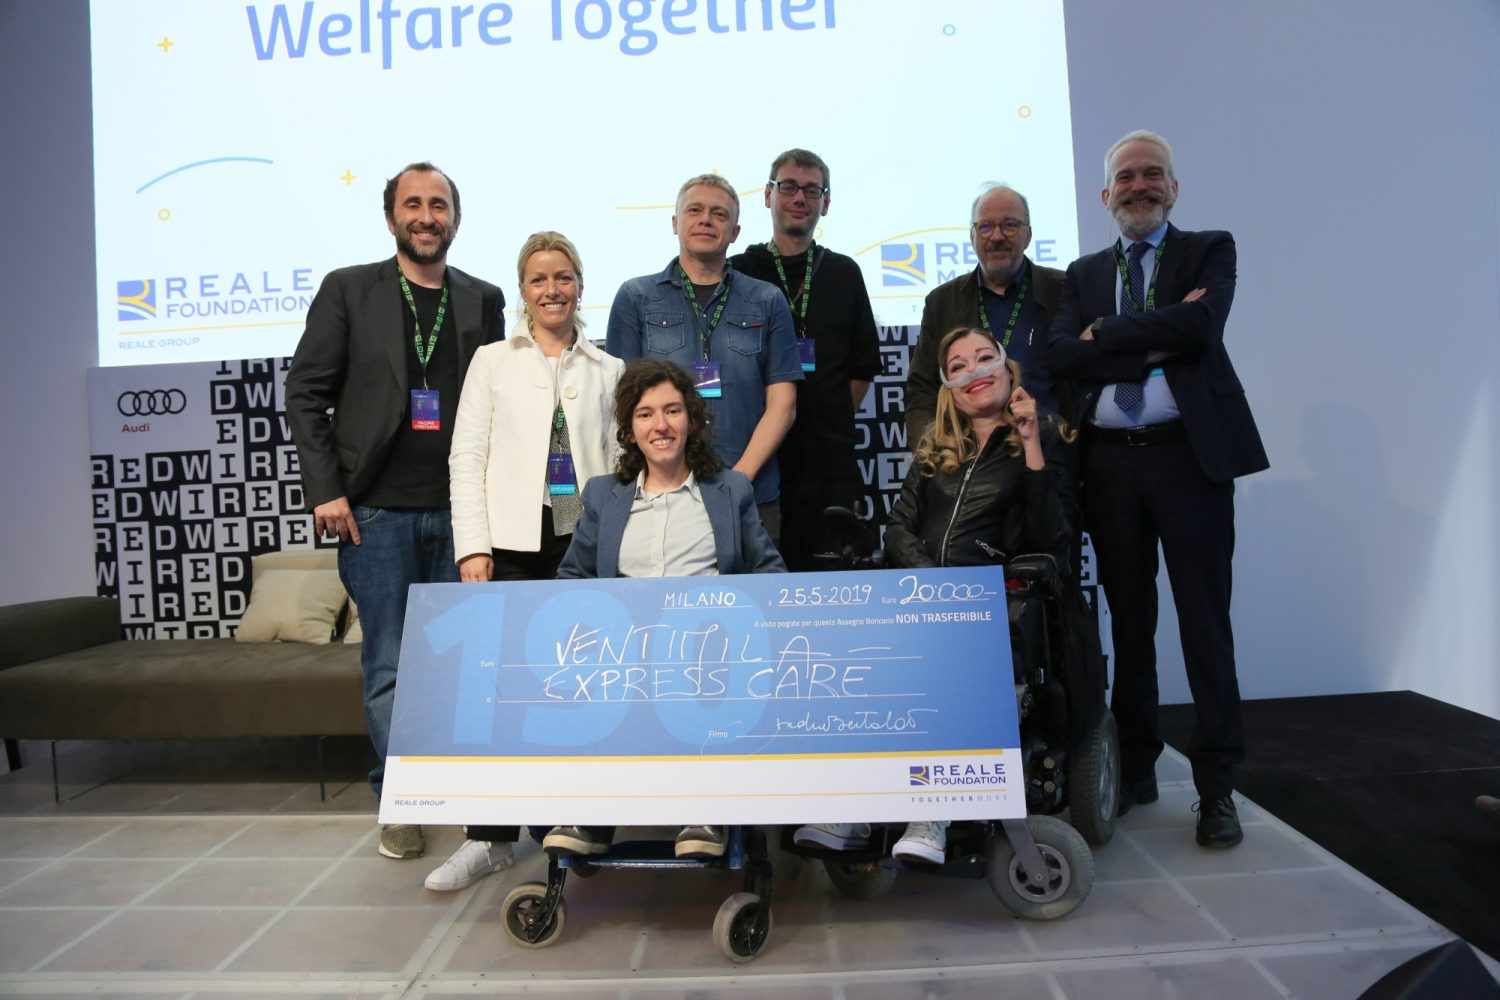 Welfare Together 2019 - Premiazione Express Care Imc